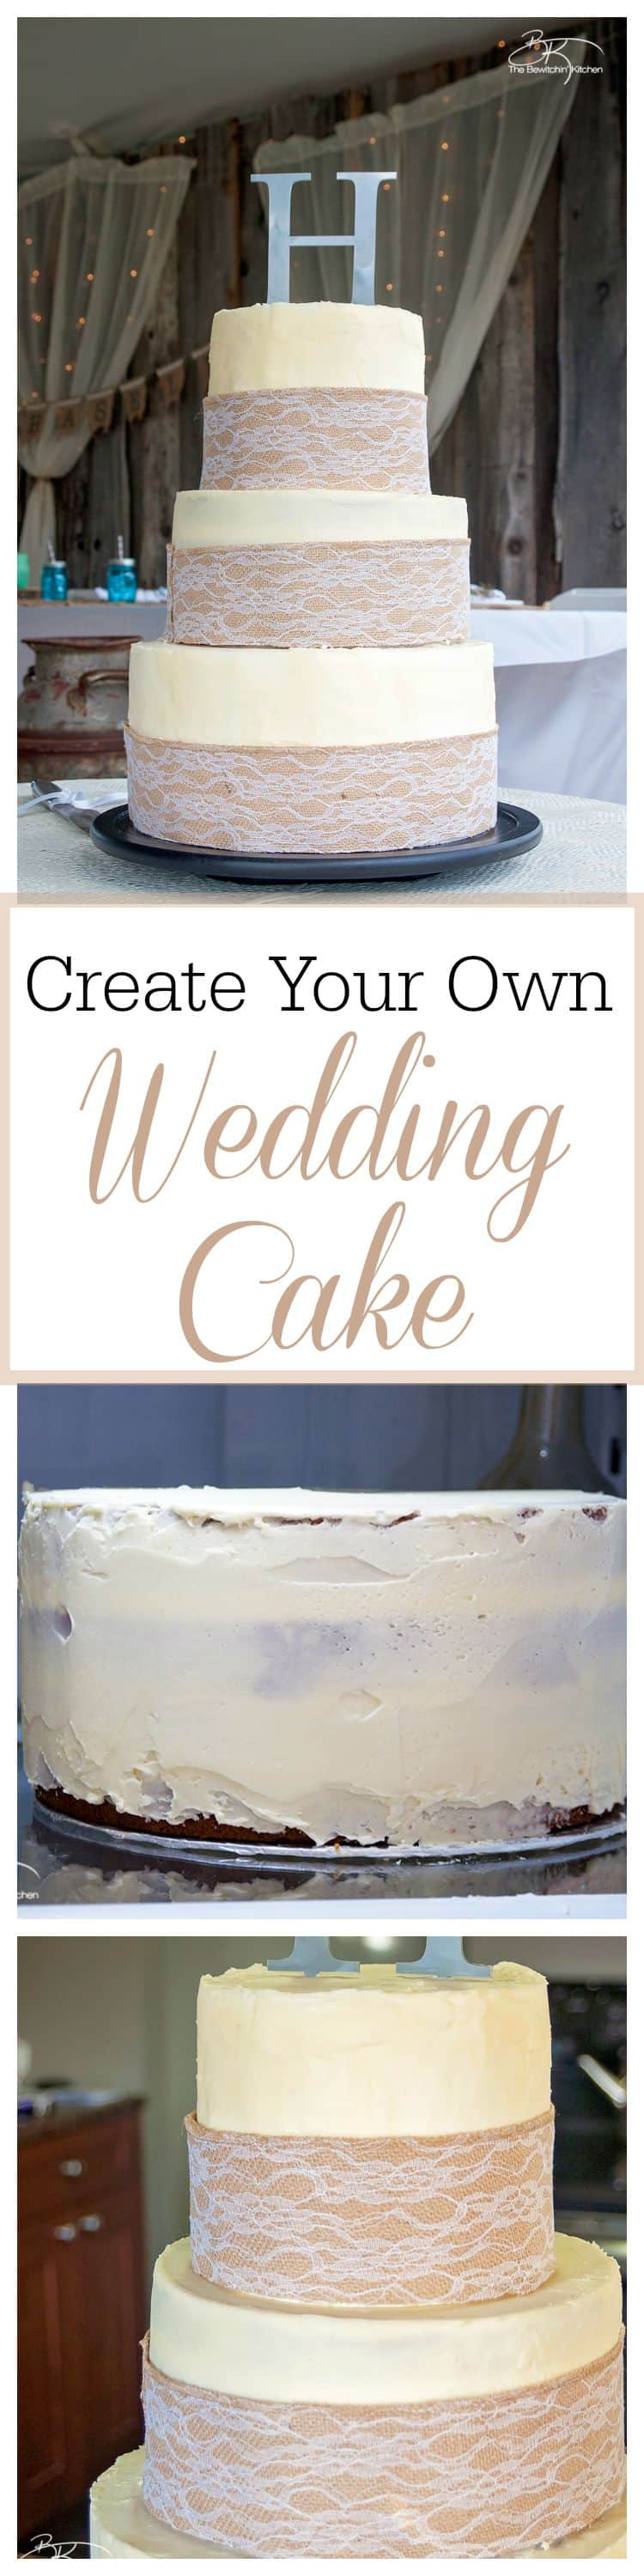 DIY wedding cakes. This three tiered diy wedding cake is fake on the bottom and top, with two vanilla lemon cakes in the middle. Wrapped with a burlap and lace trim for a rustic wedding feel. Here's how I did it.